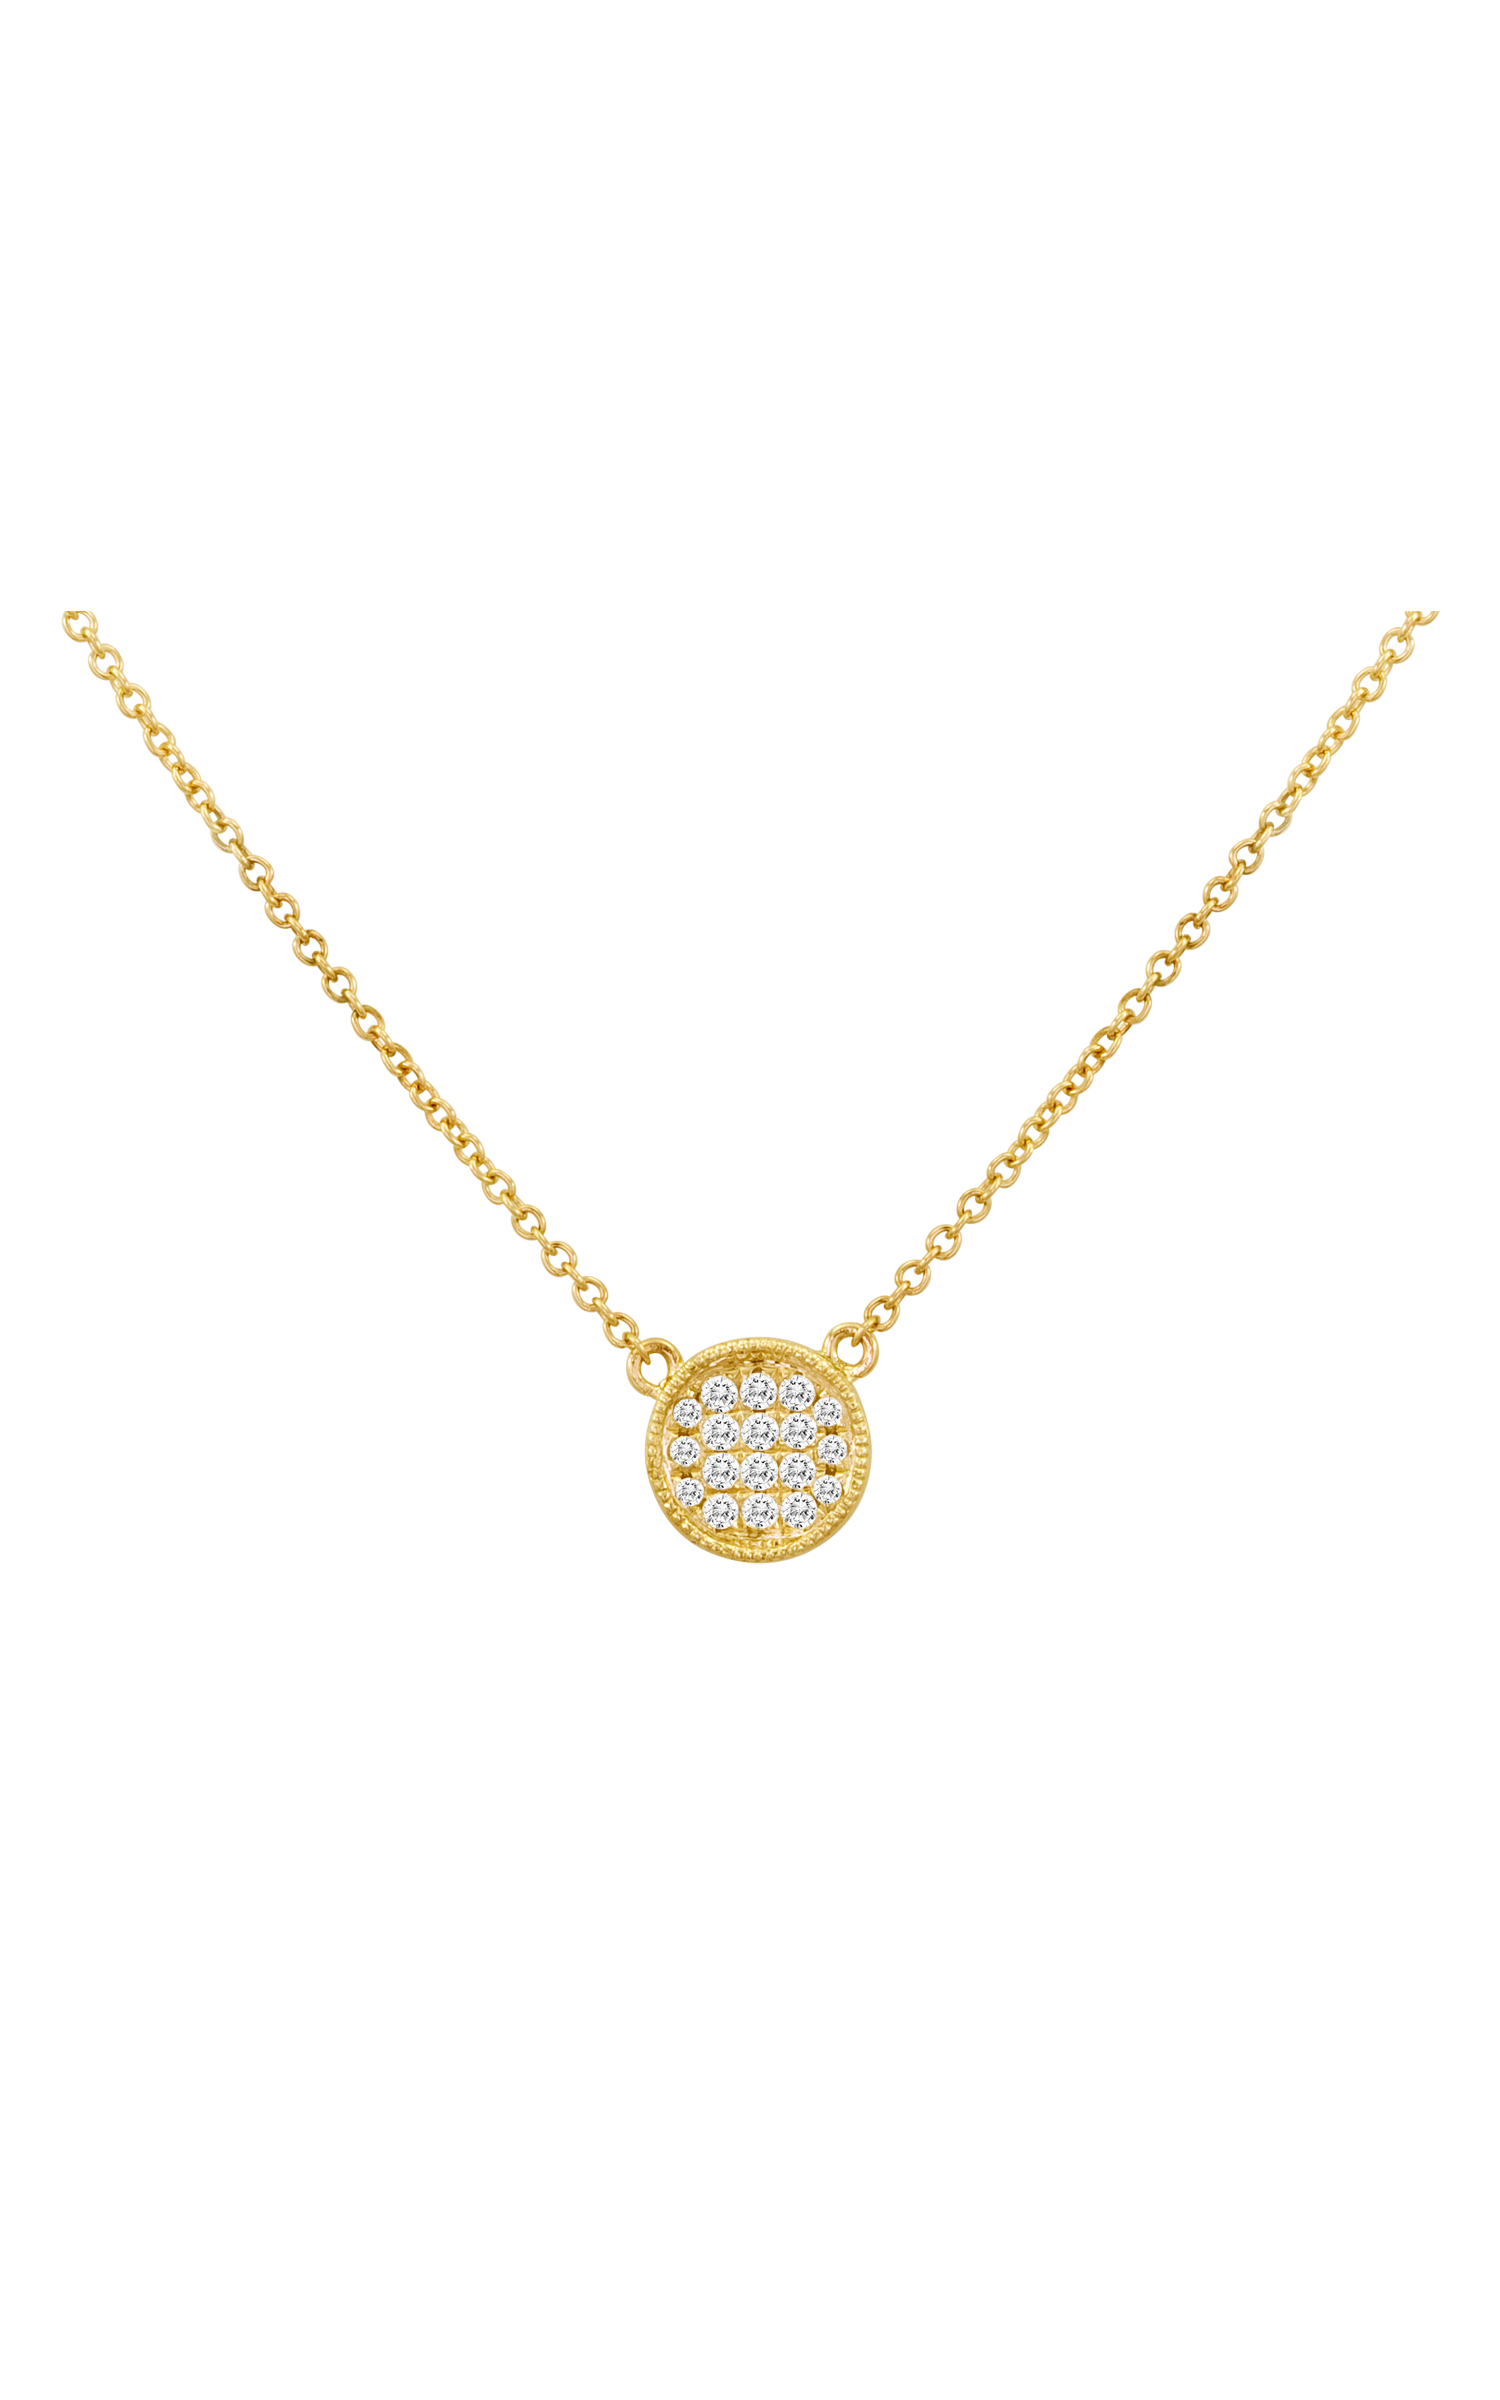 Beny Sofer Necklaces Necklace RSP1032 product image